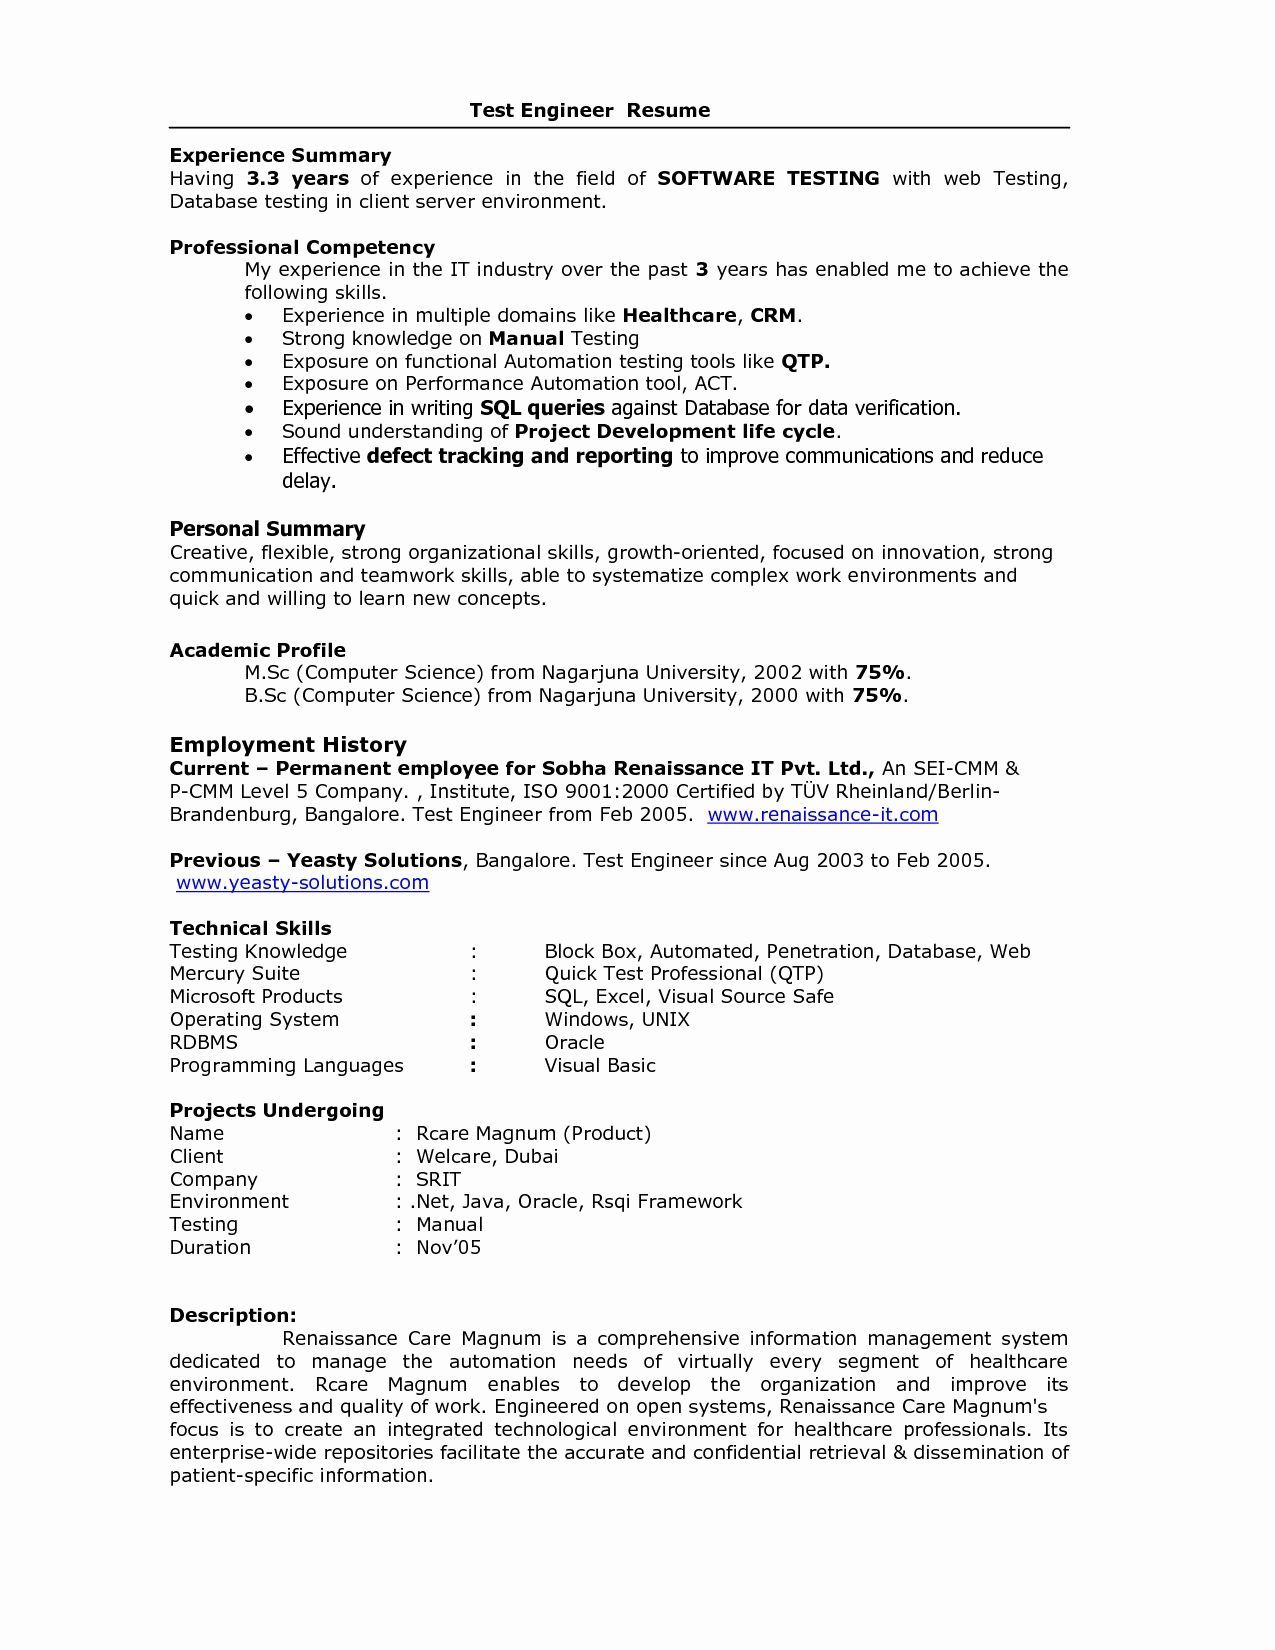 5 Years Testing Experience Sample resume format, Resume